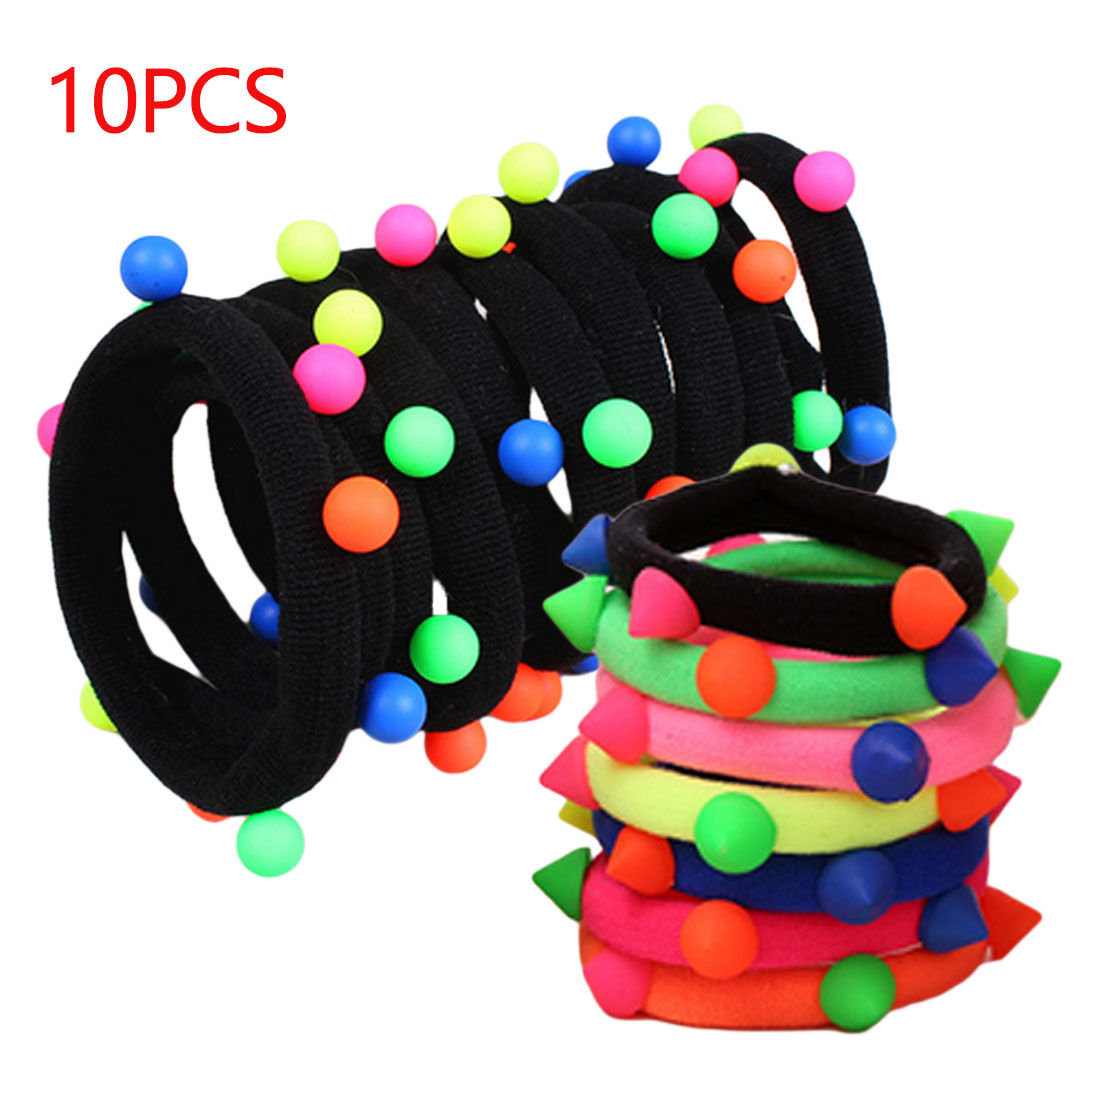 10pcs/lot Pearl Elastic Tie Gum Hair Accessories Hair Bands Headwear Ponytail Holder Ropes Seamless Scrunchie Gum for Girls hot sale women s hair accessories high quality elastic rubber bands for girls ponytail holder rope female headwear tie gum ns075